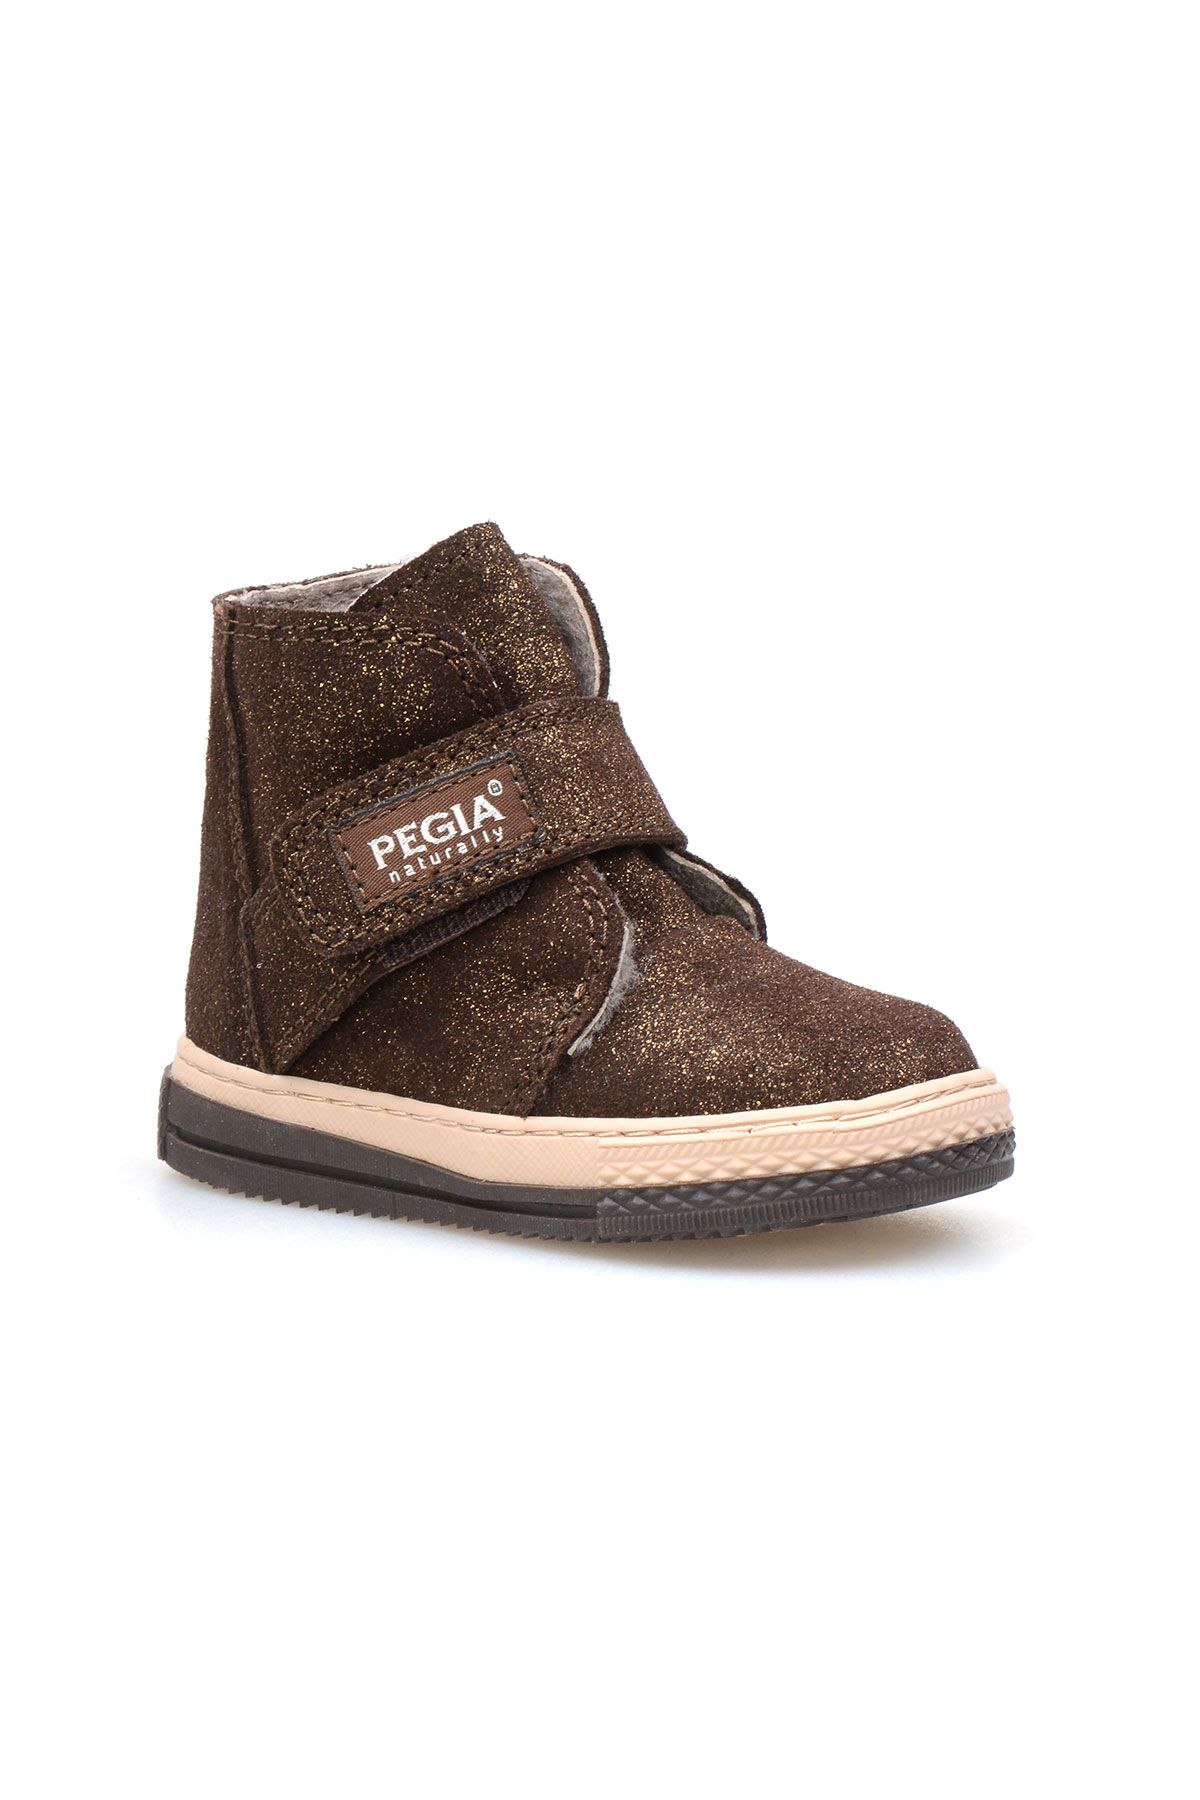 Pegia Genuine Printed Leather Sheepskin Lined Kid's Boots 186017 Brown